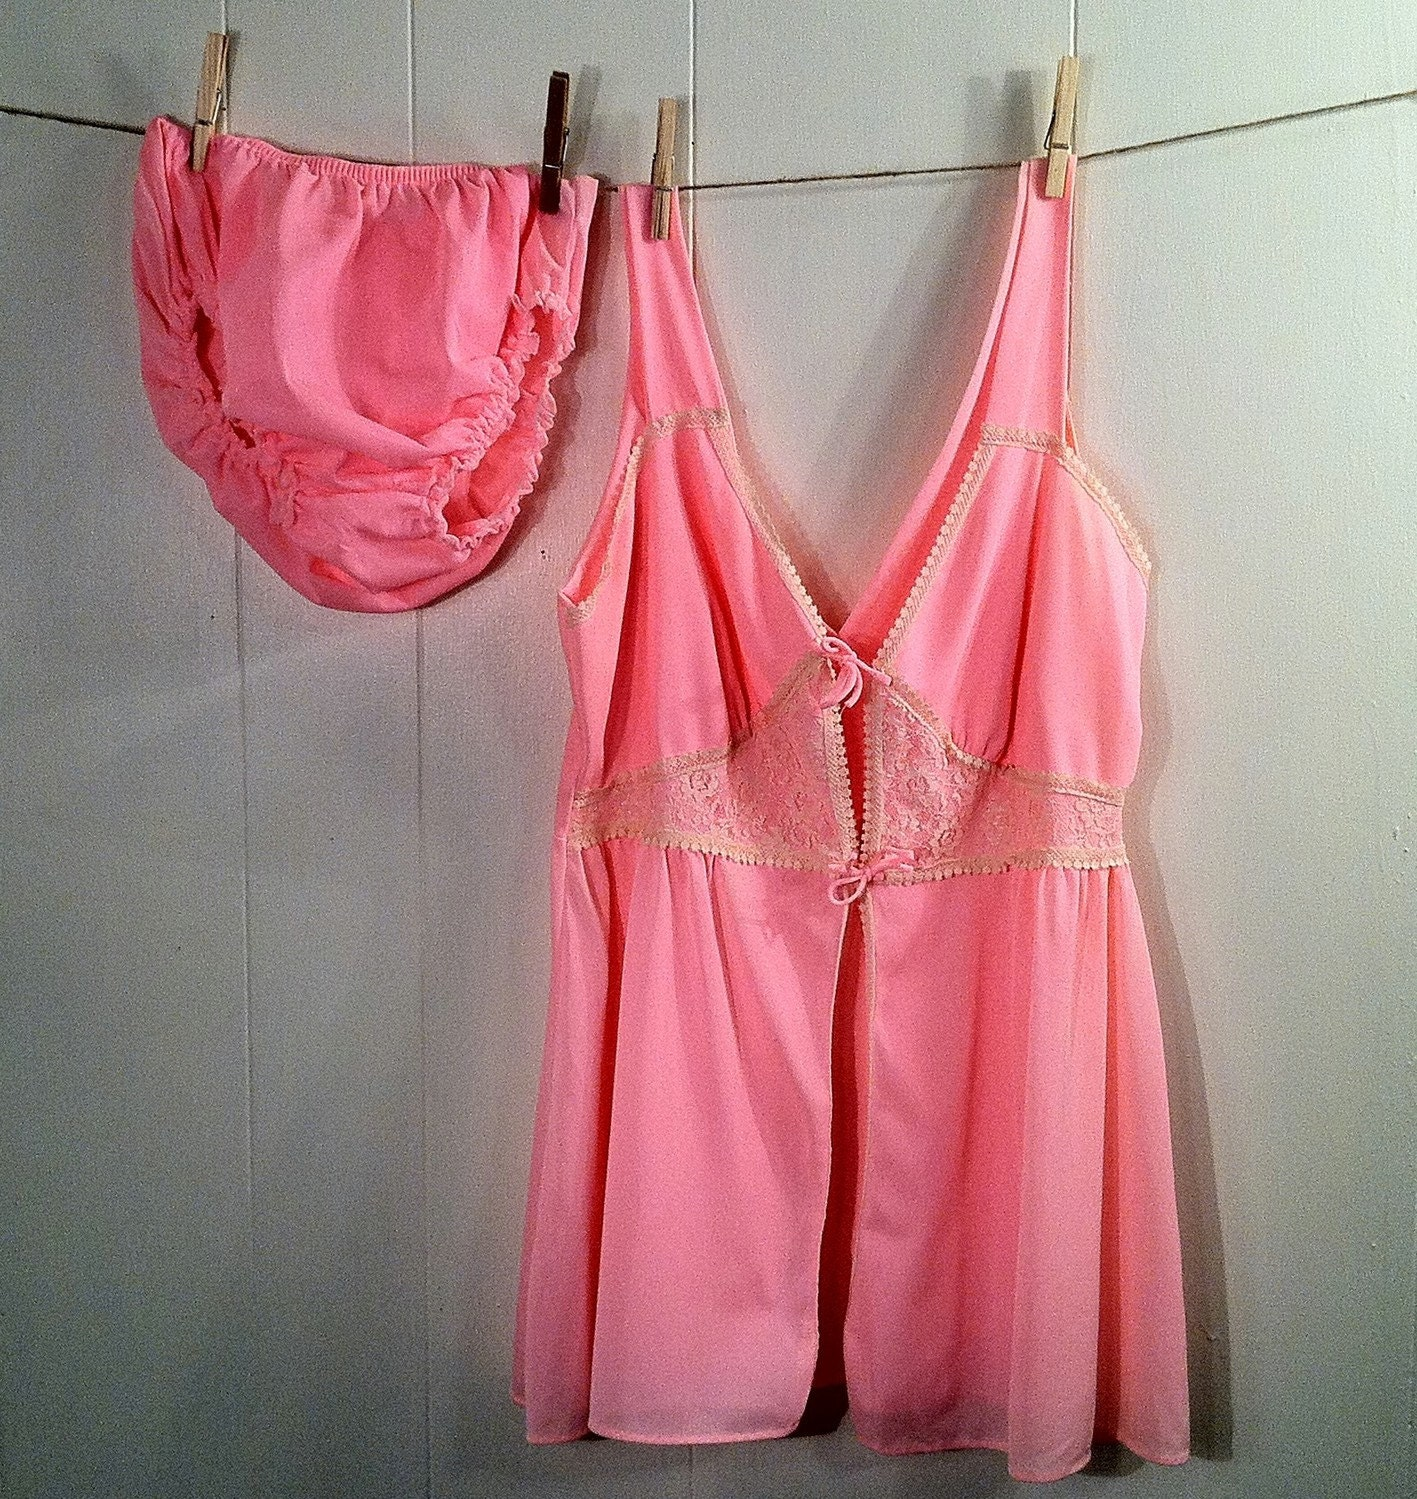 Vintage 1960s Pink Nylon Baby Doll Nightie Matching Bloomers